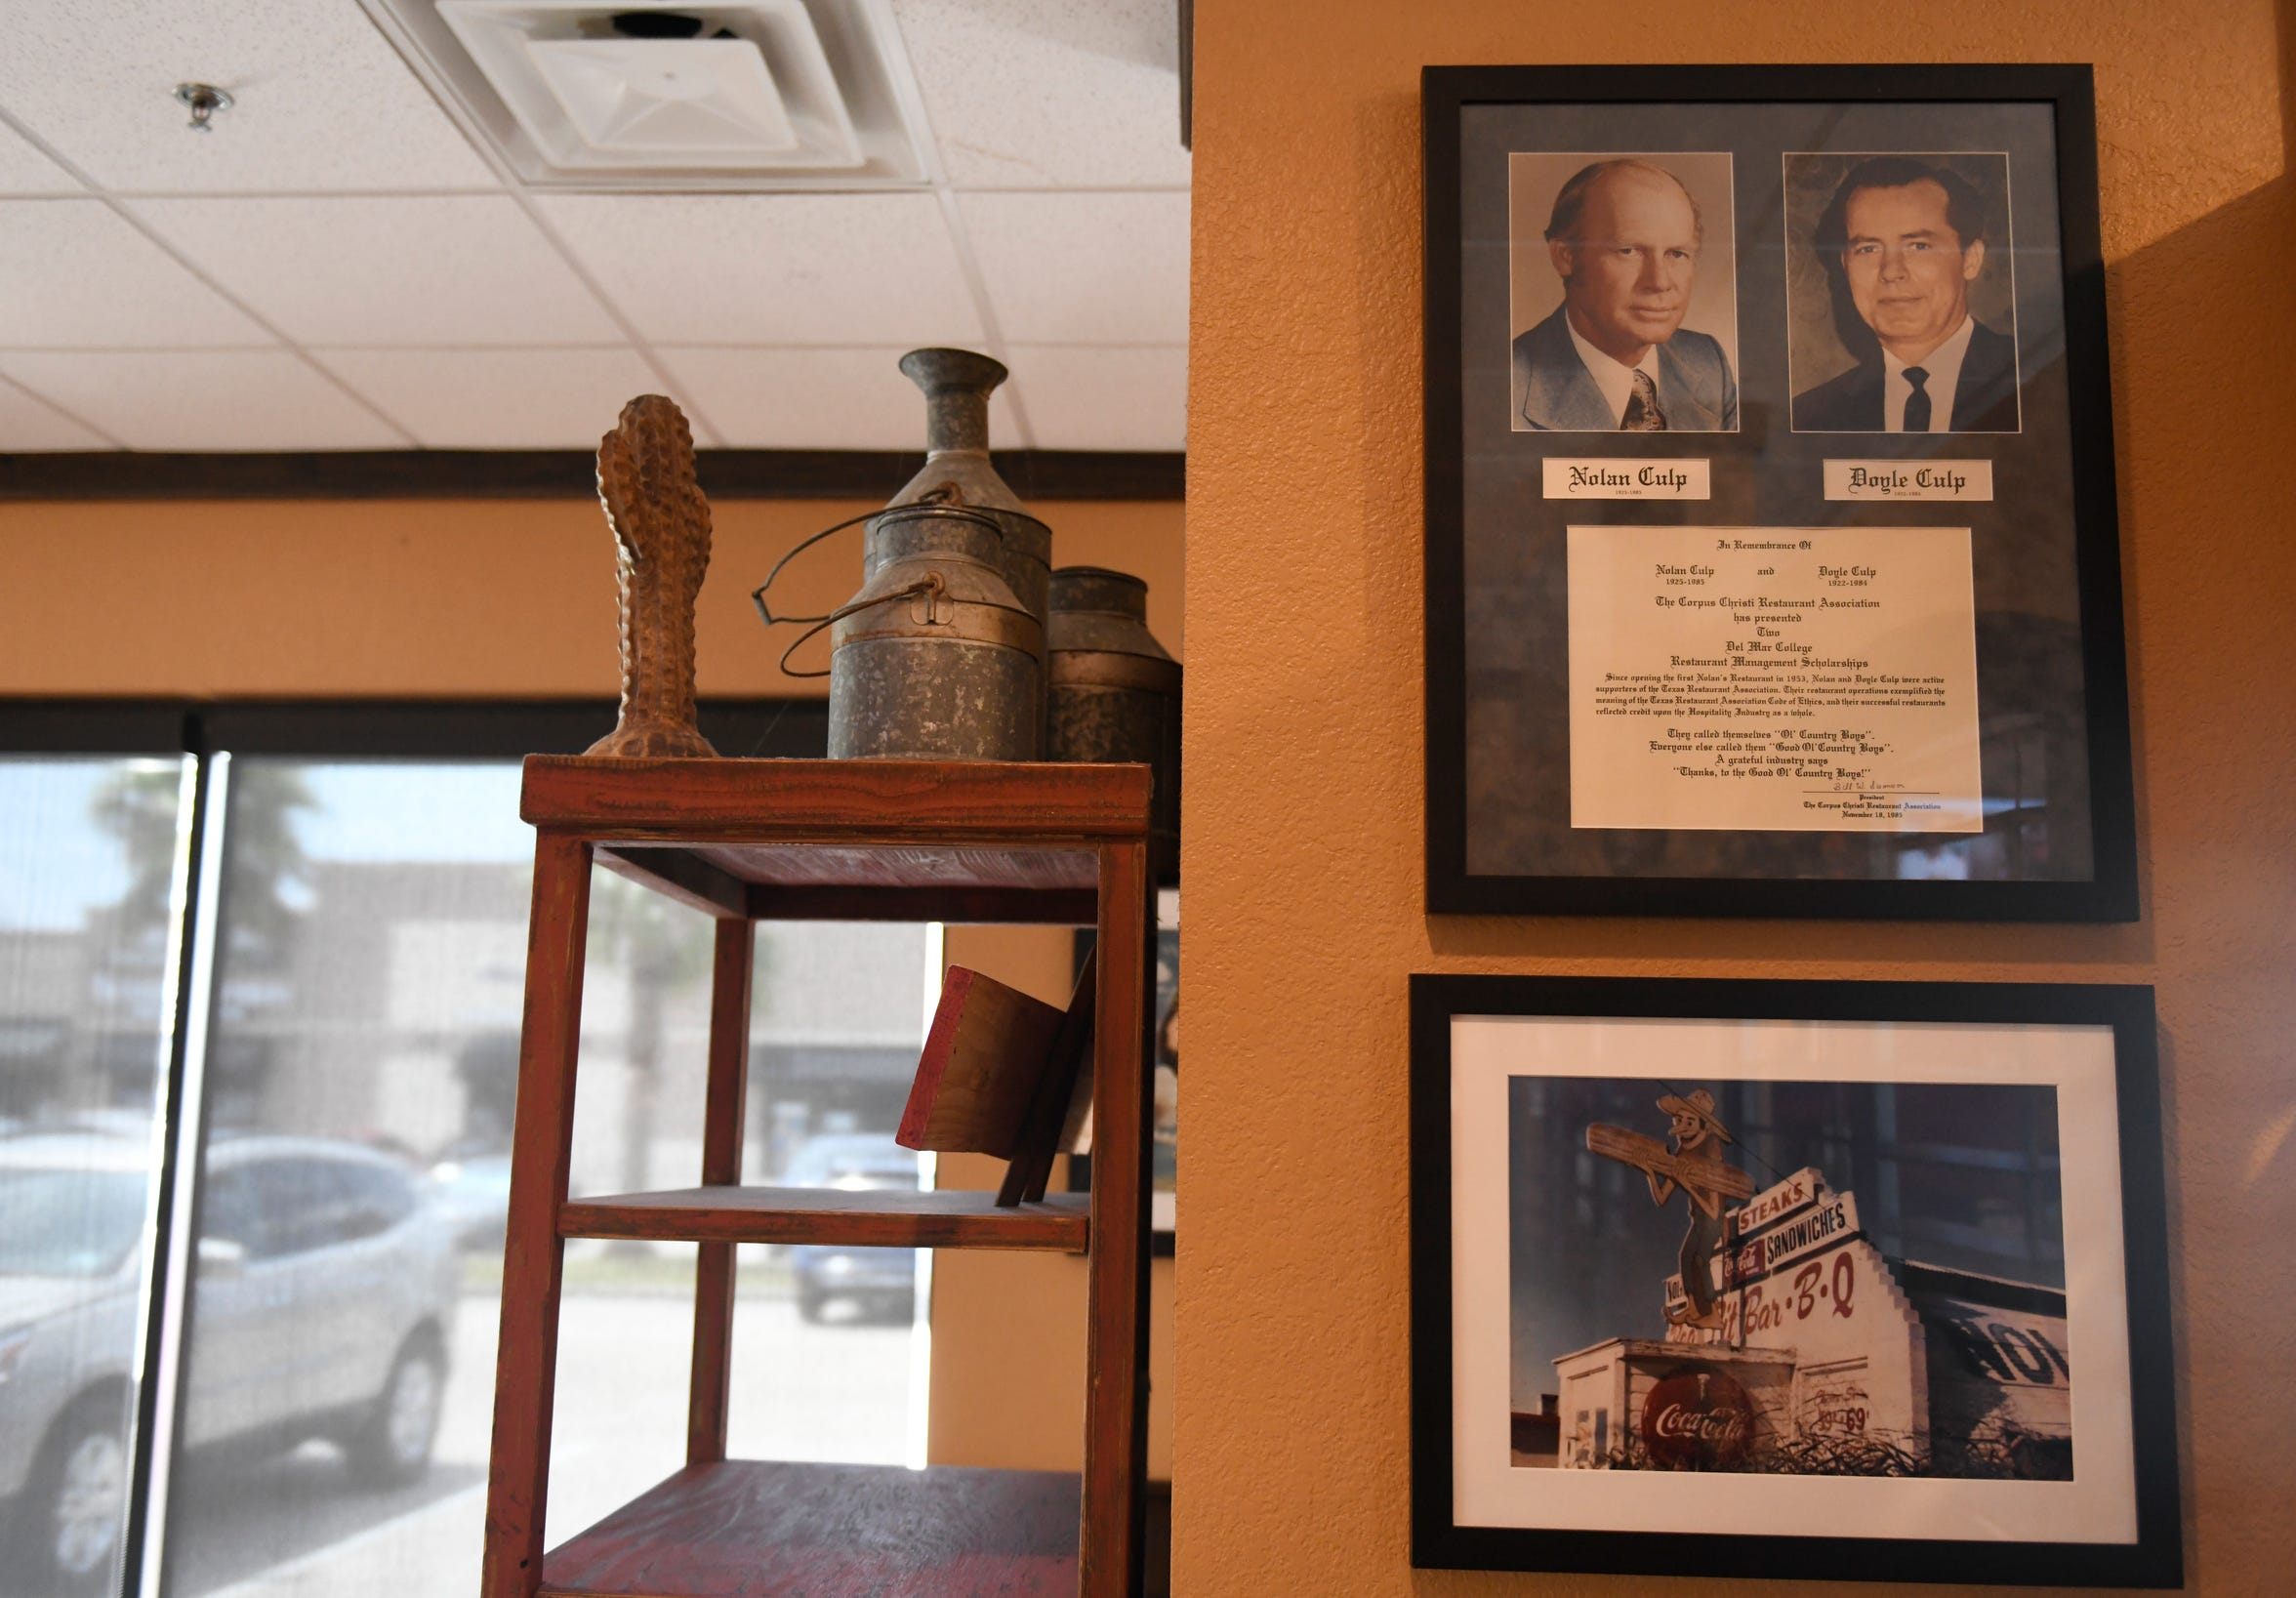 Nolan's was founded by brothers Nolan and Doyle Culp in 1953 and has had locations all over the Corpus Christi area. The location at Staples and Yorktown Blvd., seen on Thursday, Aug. 15, 2019, has photos of the founders and it's original location on Ayers Street on the wall.